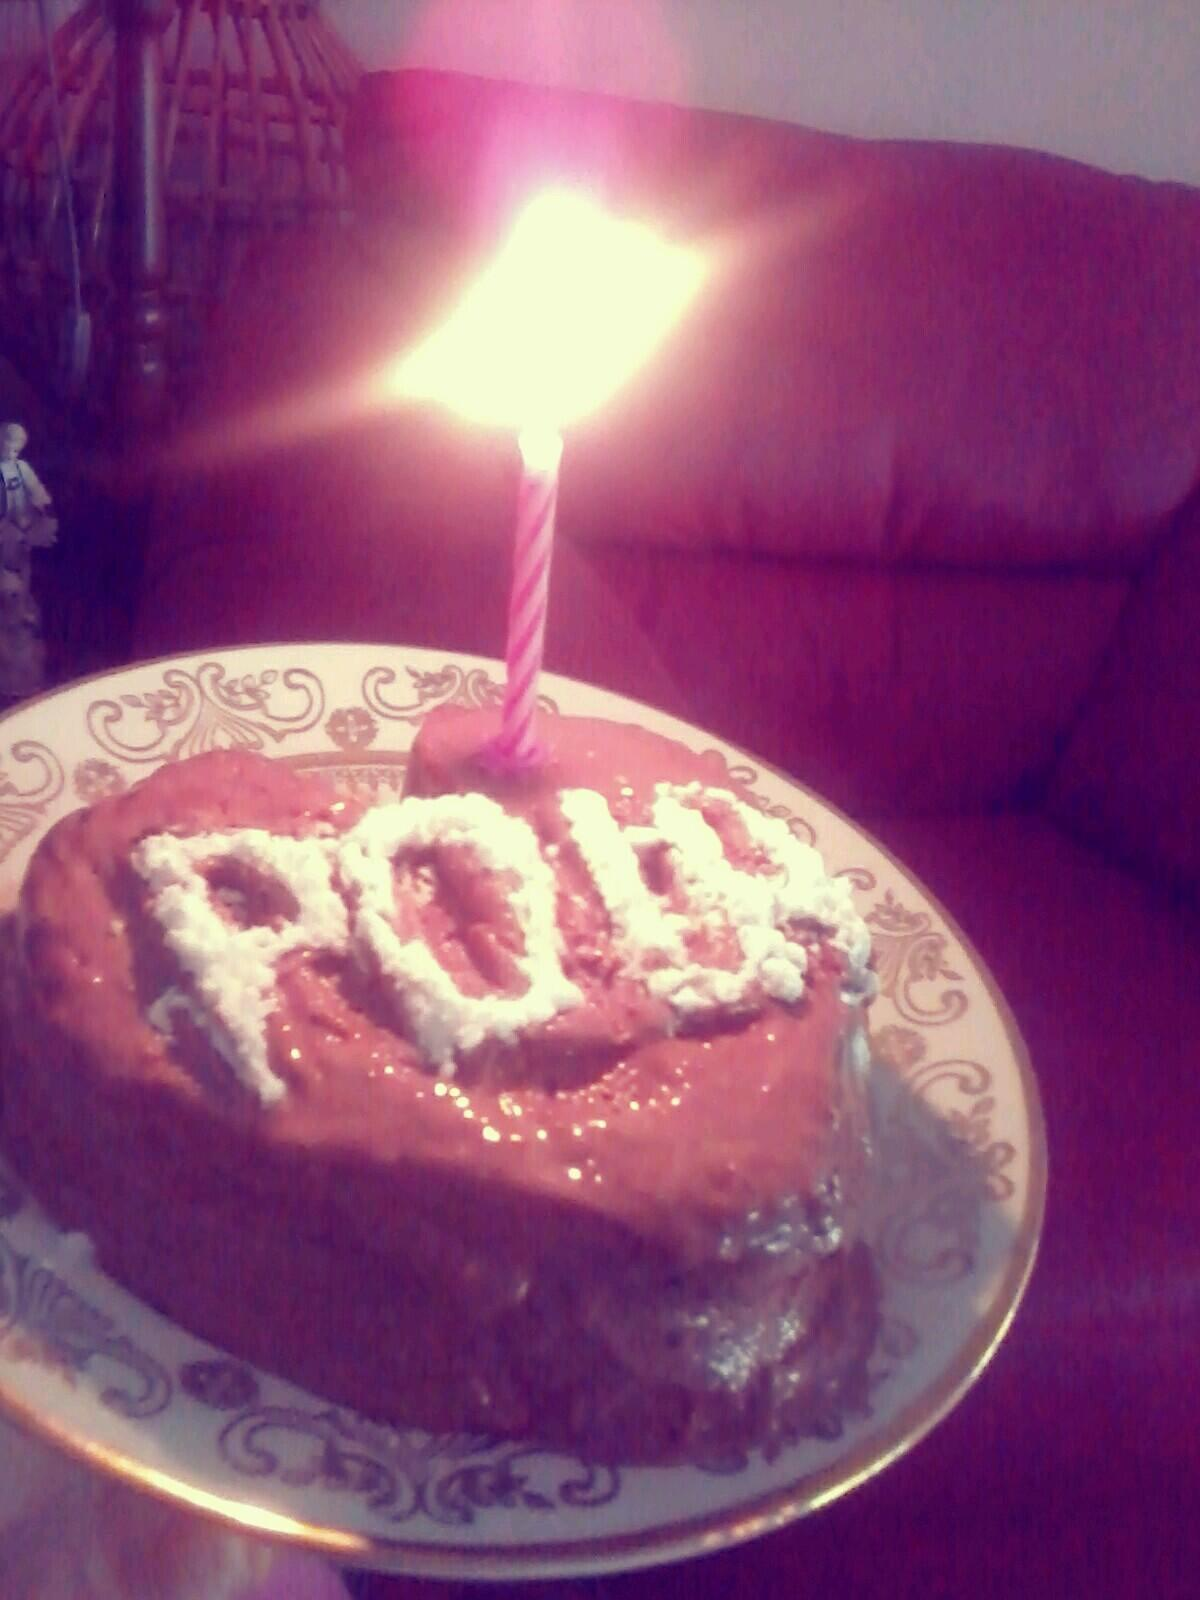 AWWW! xoP RT @teamabdulserbia: Happy Birthday! Here's your cake i made. (your name written on Serbian ;) @PaulaAbdul http://t.co/NC7vdkoqbh